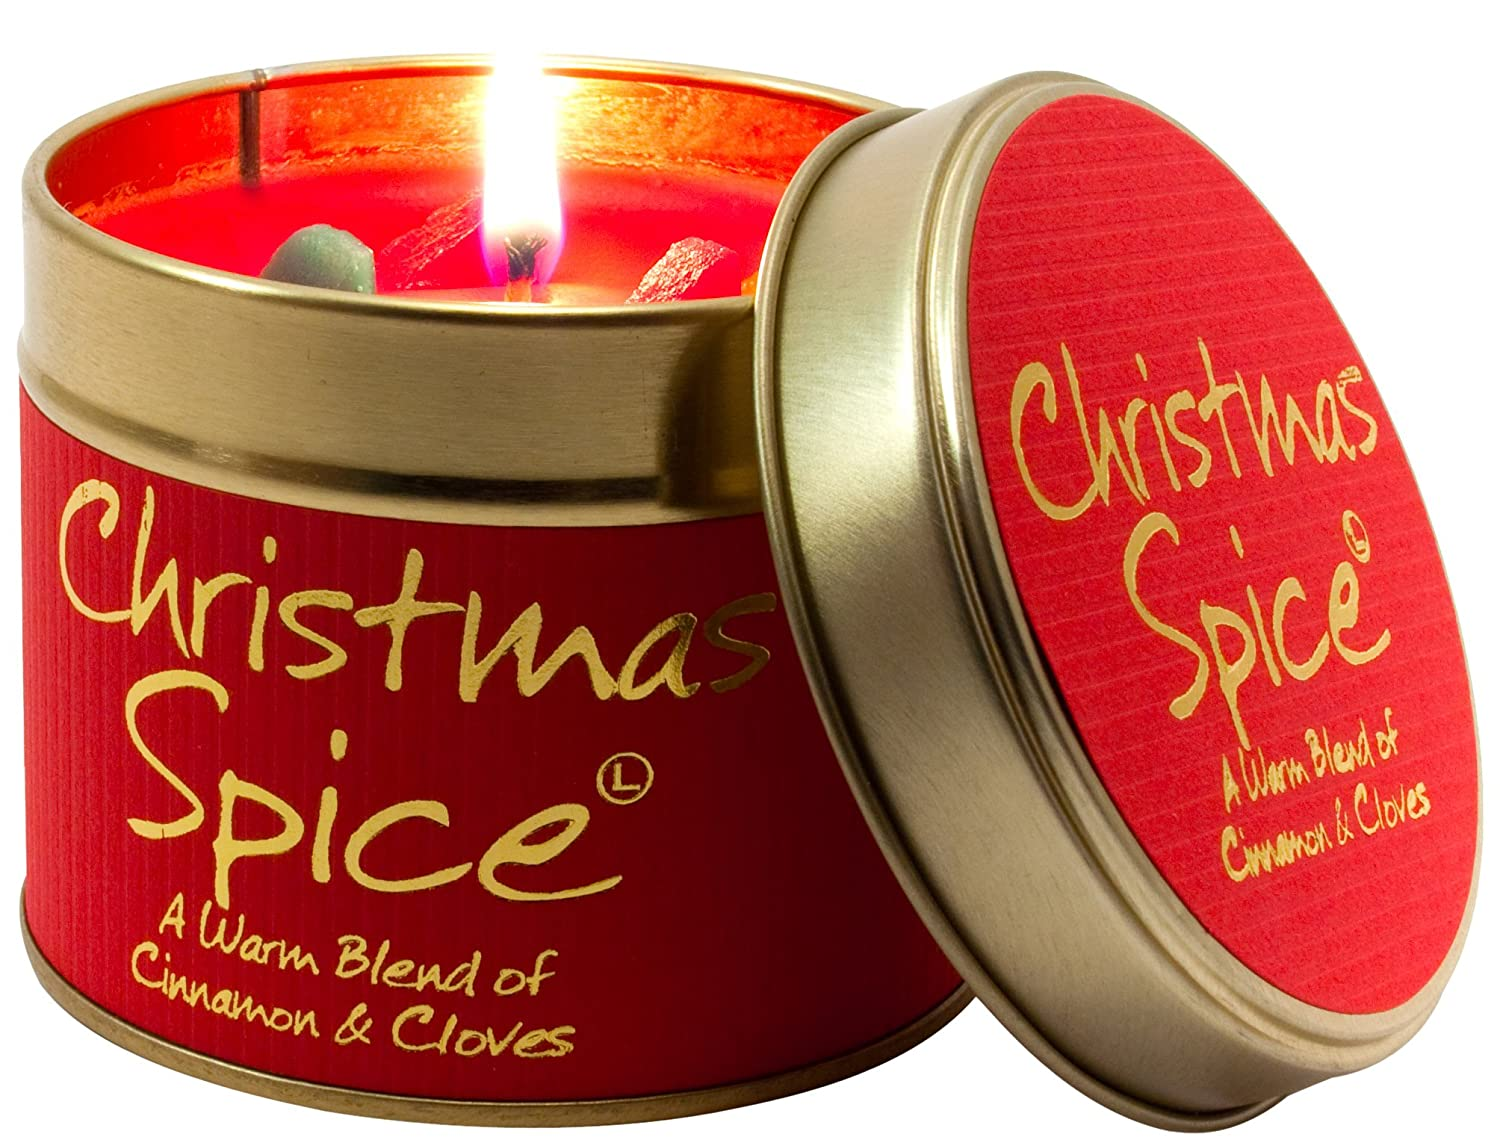 Lily Flame. Lata Christmas Spice, color rojo. Lily-Flame 1SPI